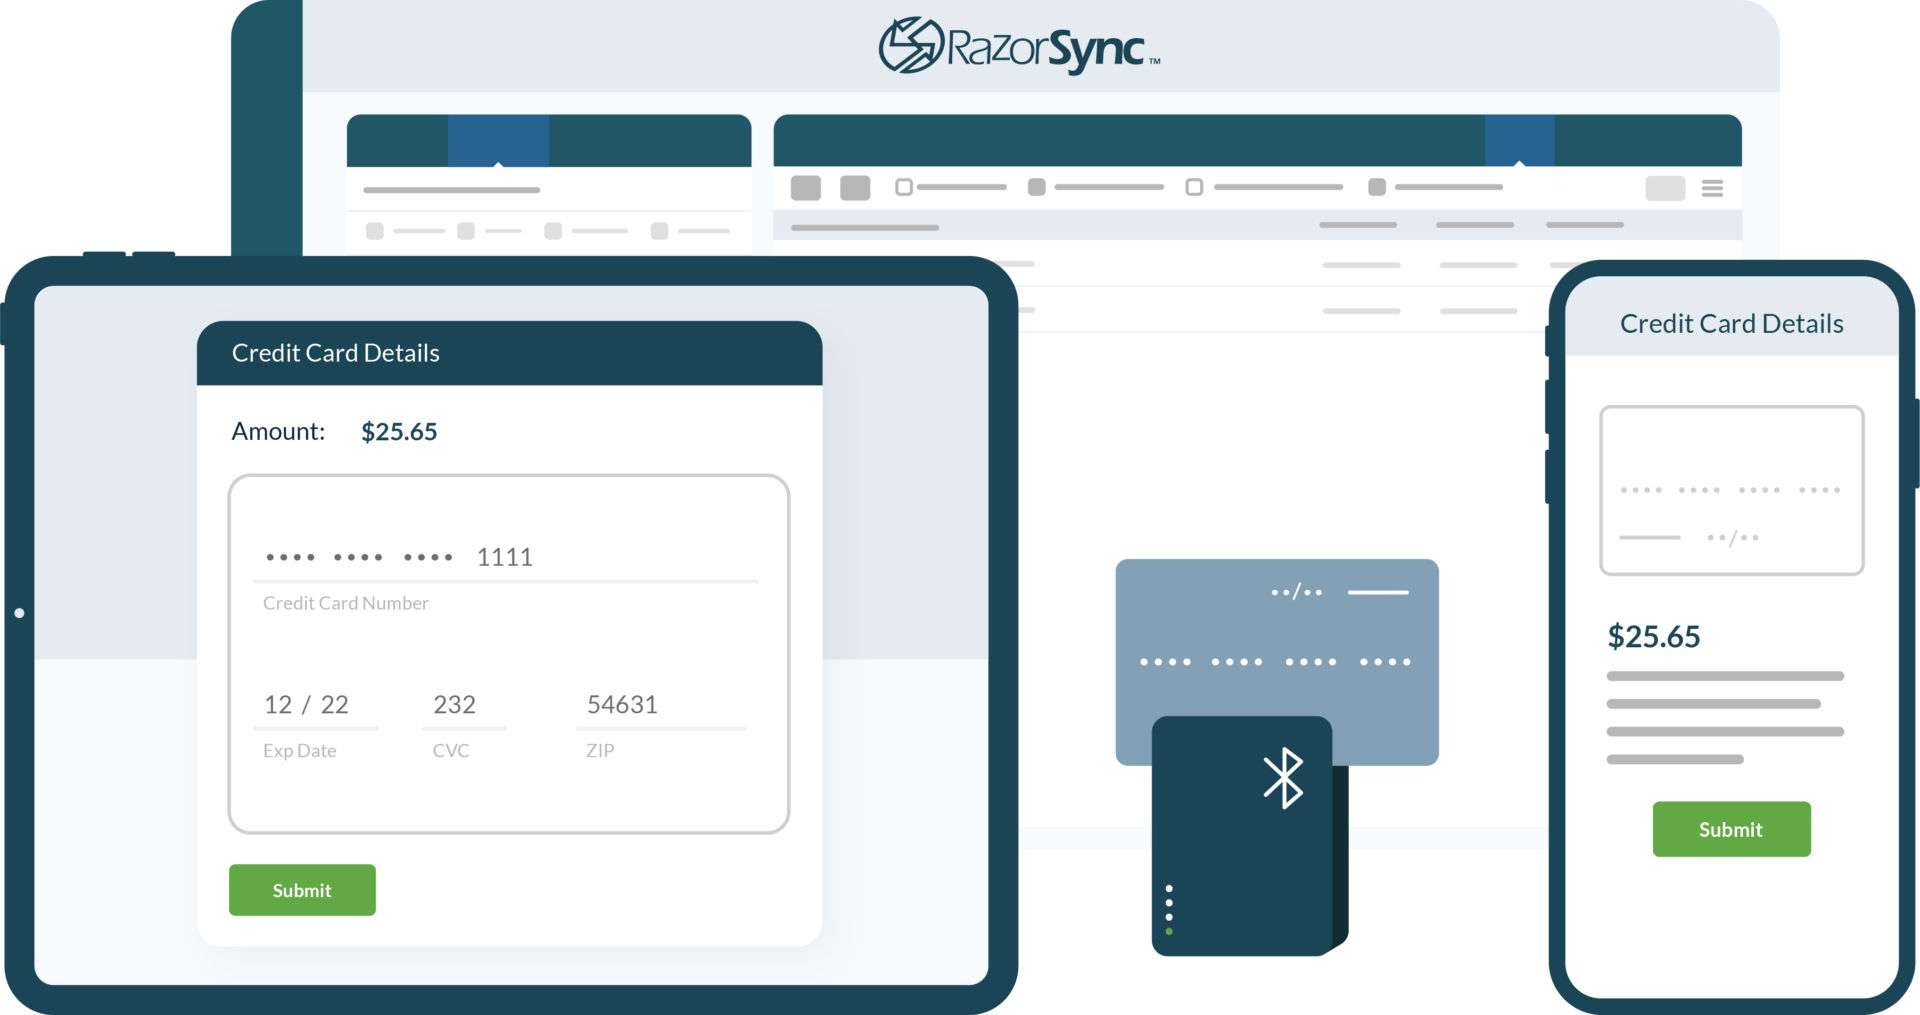 razorsync app screen overview and credit card payment details displayed on computer, tablet, and phone